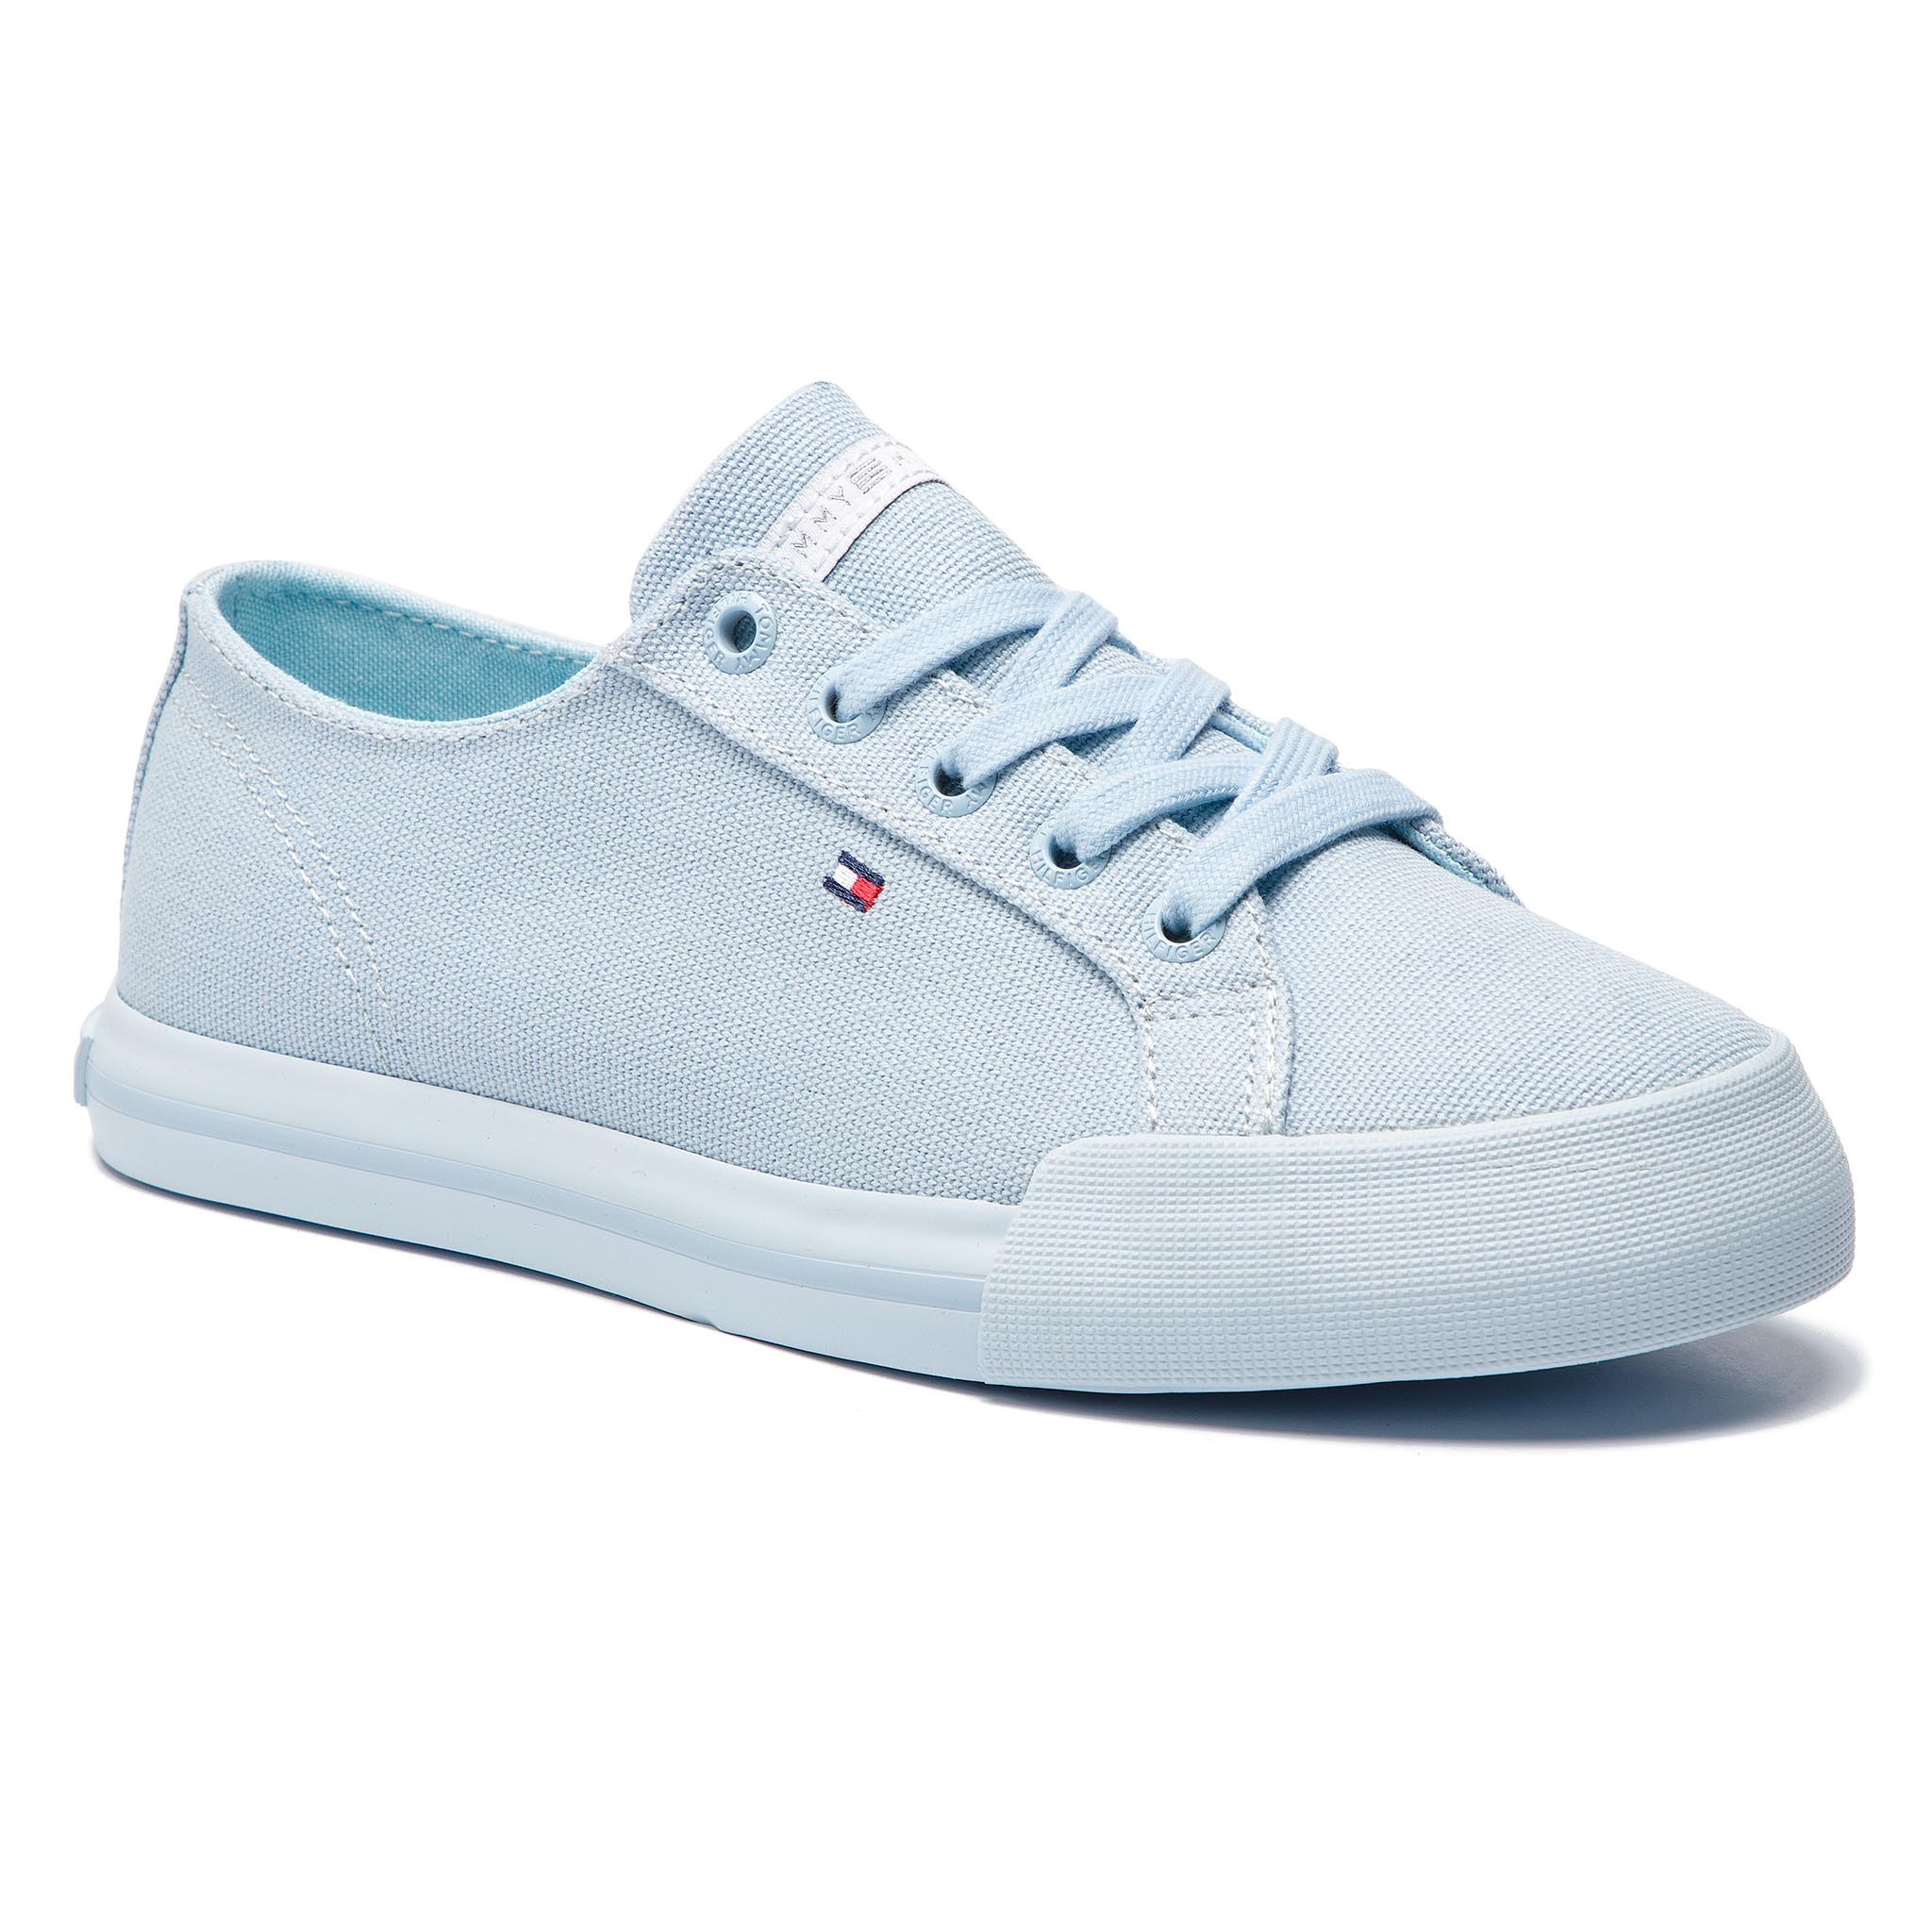 Teniși TOMMY HILFIGER - Pastel Tommy Essential Sneaker FW0FW04067 Omphalodes 450